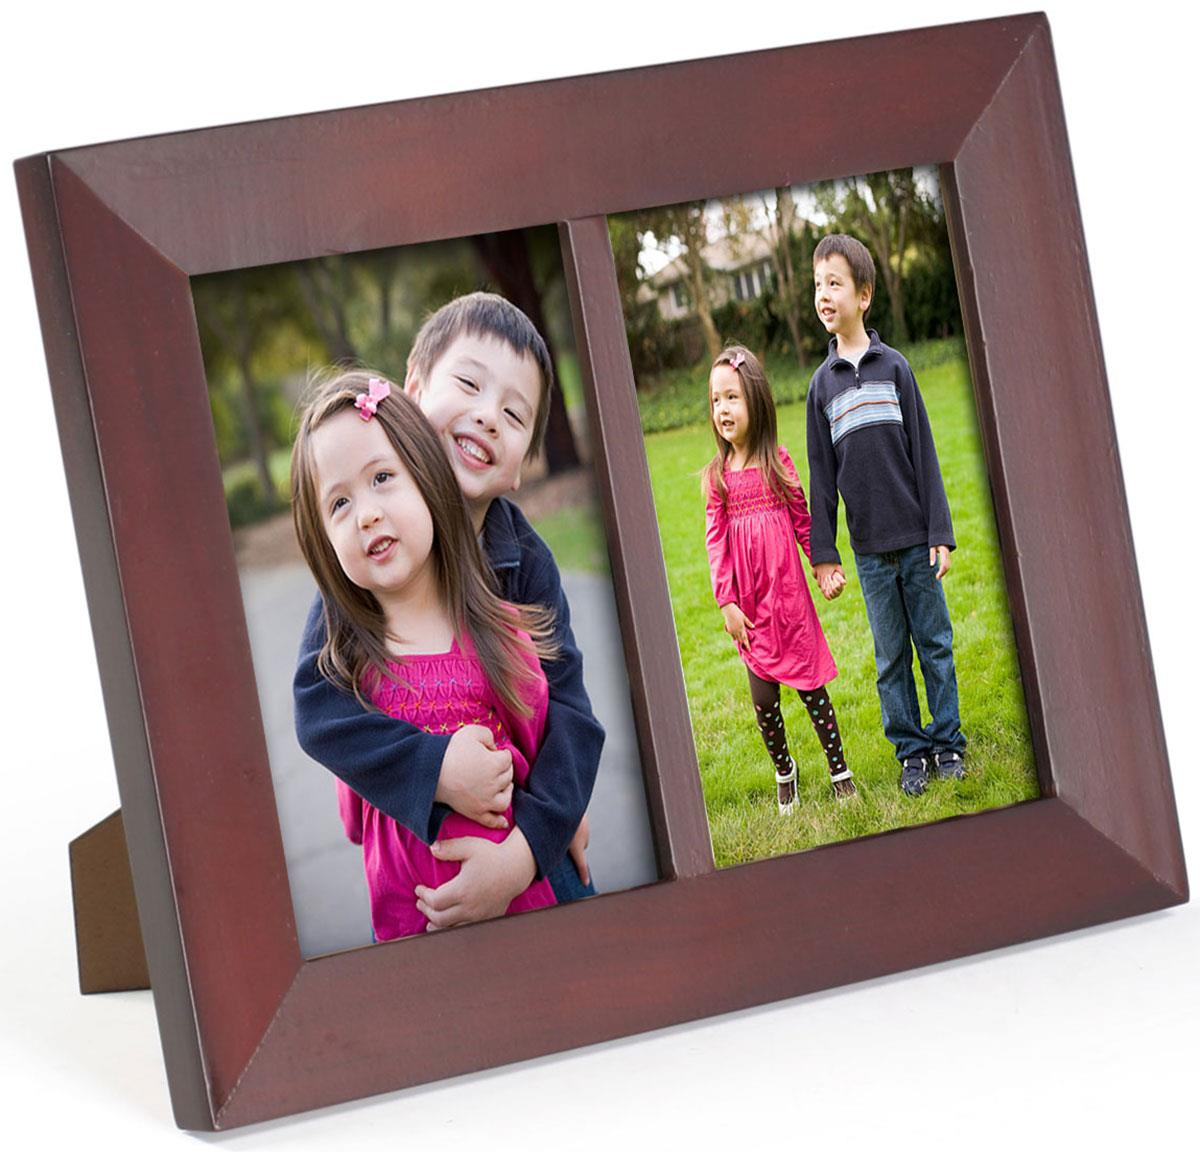 Collage Frames Mahogany Tabletop Multi Photo Display